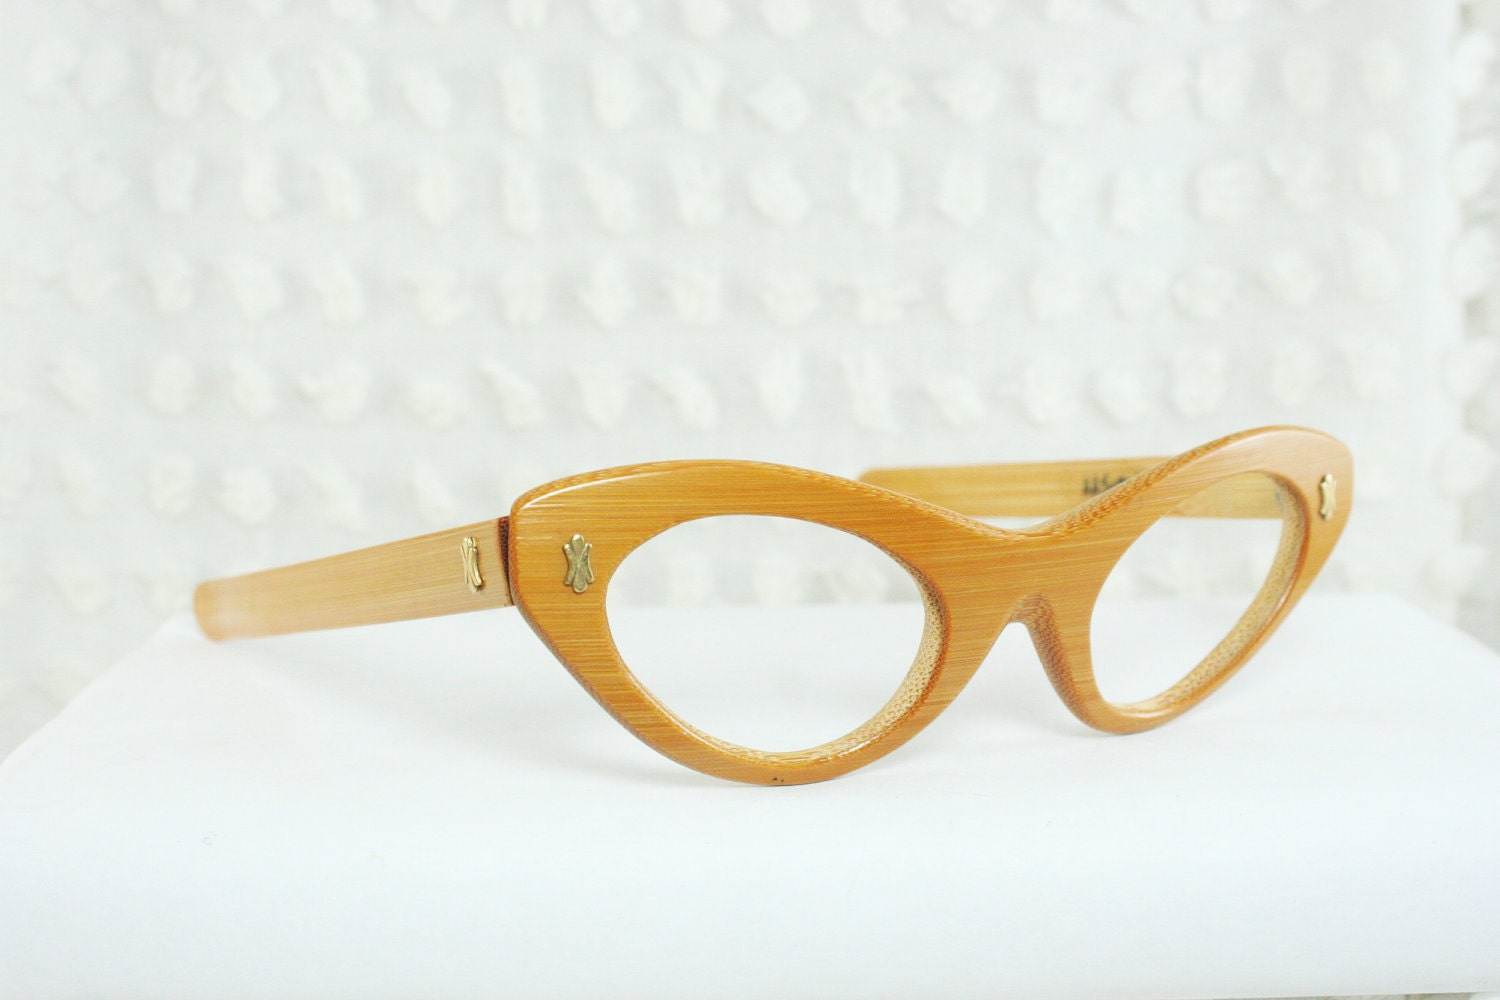 5cdb2bdca8 1950s Cat Eye Glasses 60s Womens Eyeglass Natural Bamboo Carved Wood Optical  Frame NOS 44 20 AA Sutain 98.00 USD